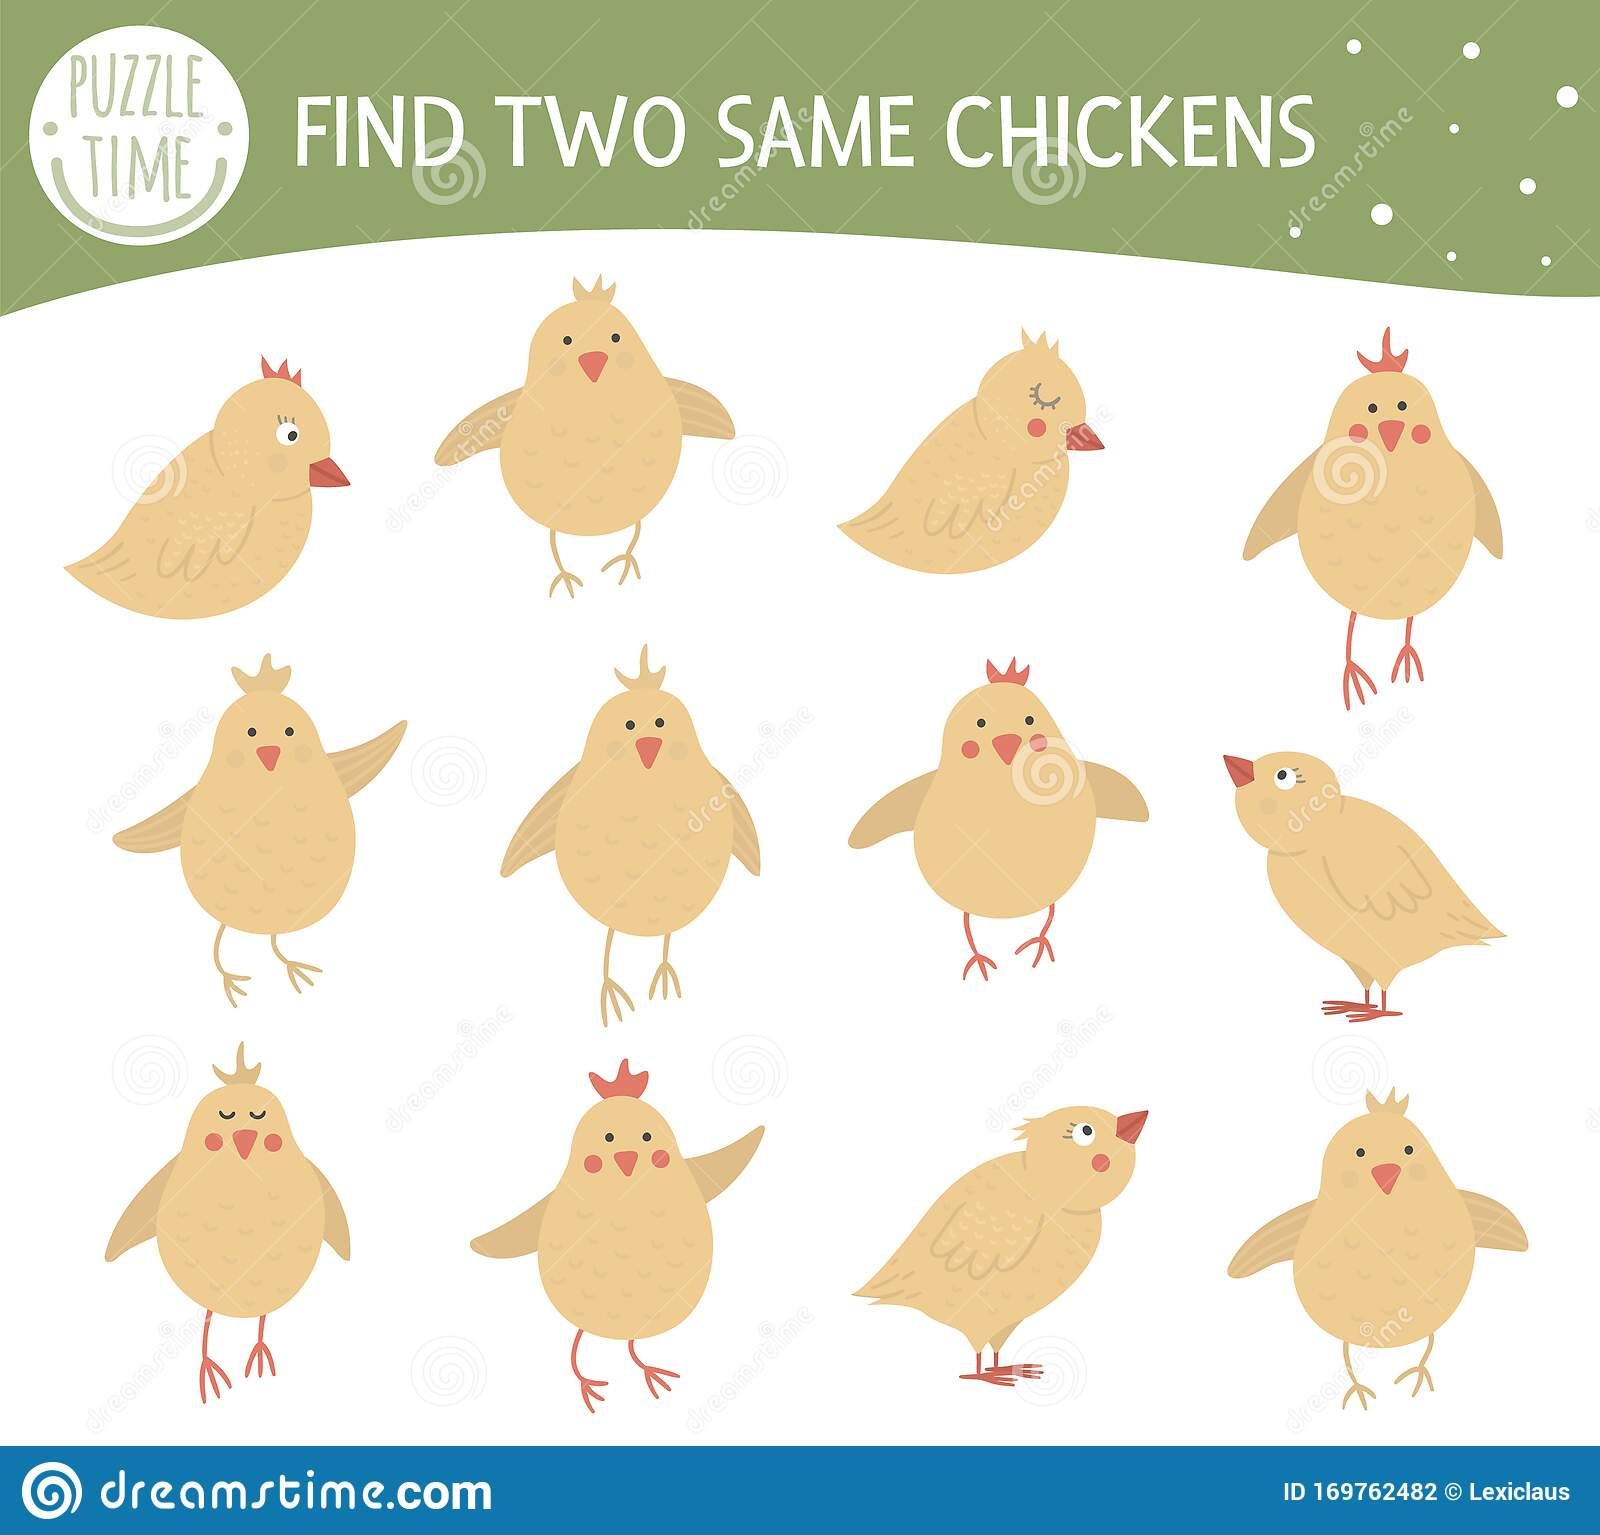 Find Two Same Chickens Easter Matching Activity For